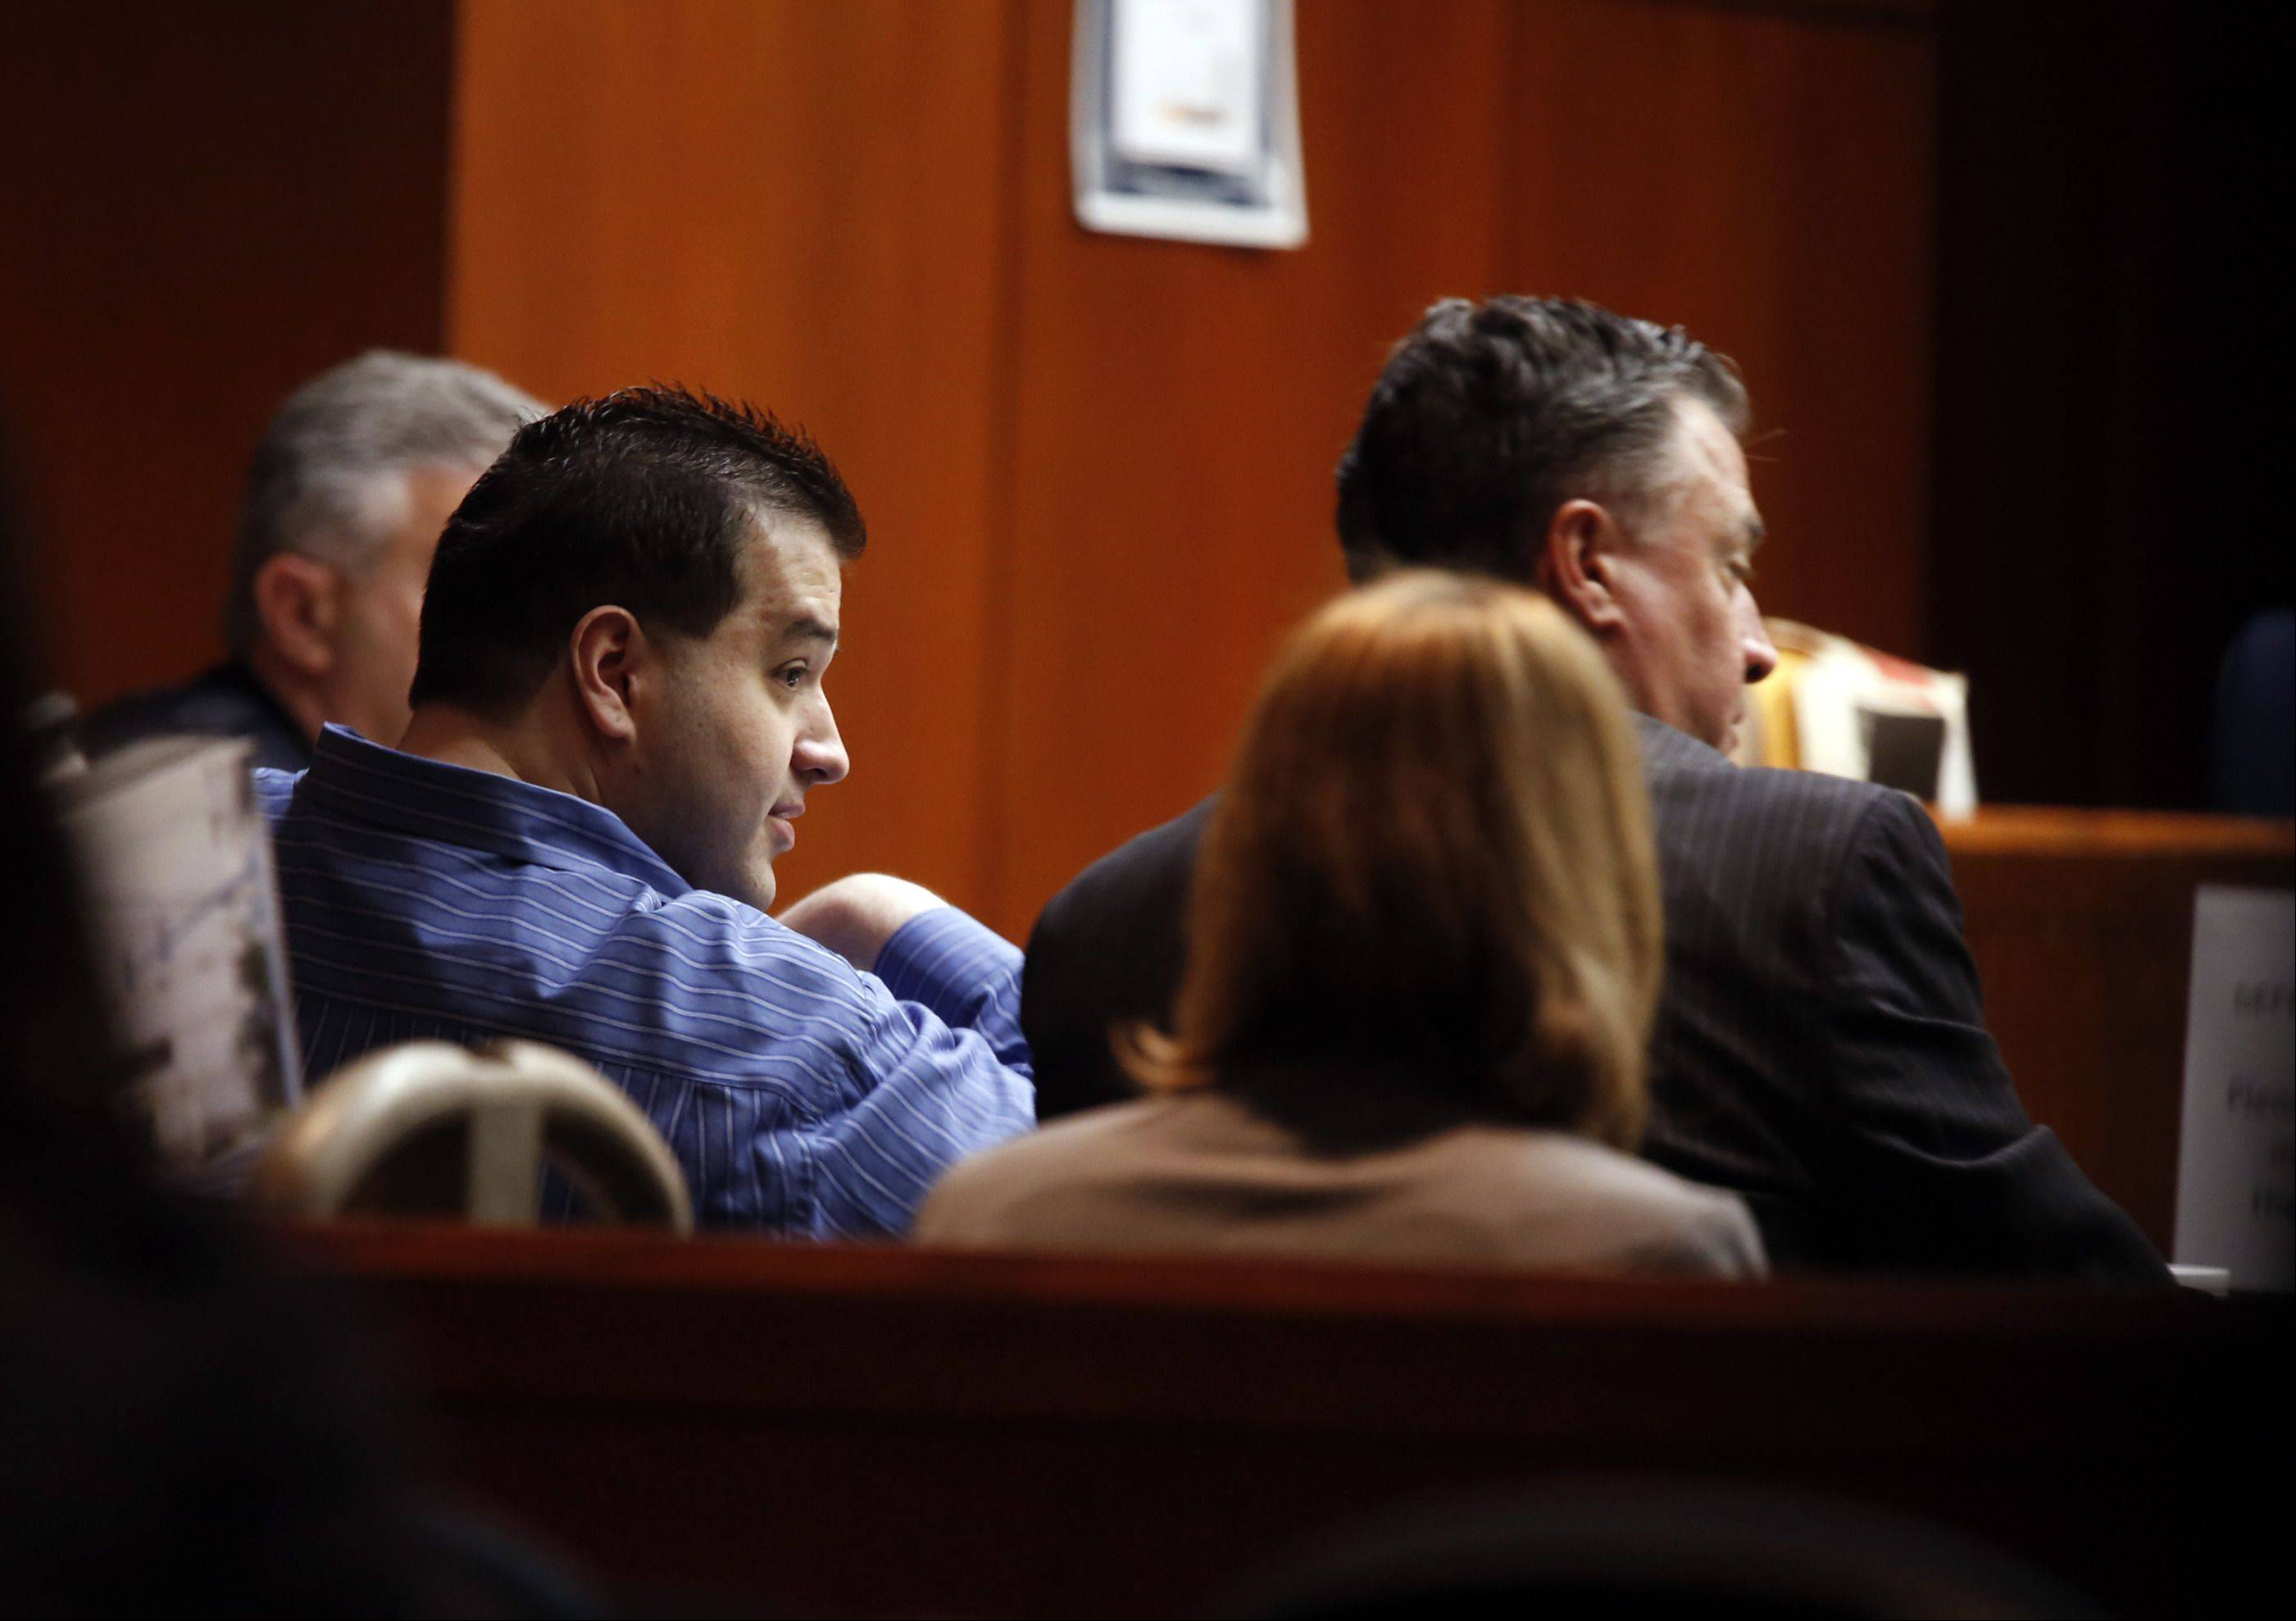 POOL/Chicago Tribune, Chuck BermanDefendant Johnny Borizov, left, who is being tried on charges of first-degree murder and solicitation of murder, sits at the defense table Wednesday at the DuPage County courthouse in Wheaton.